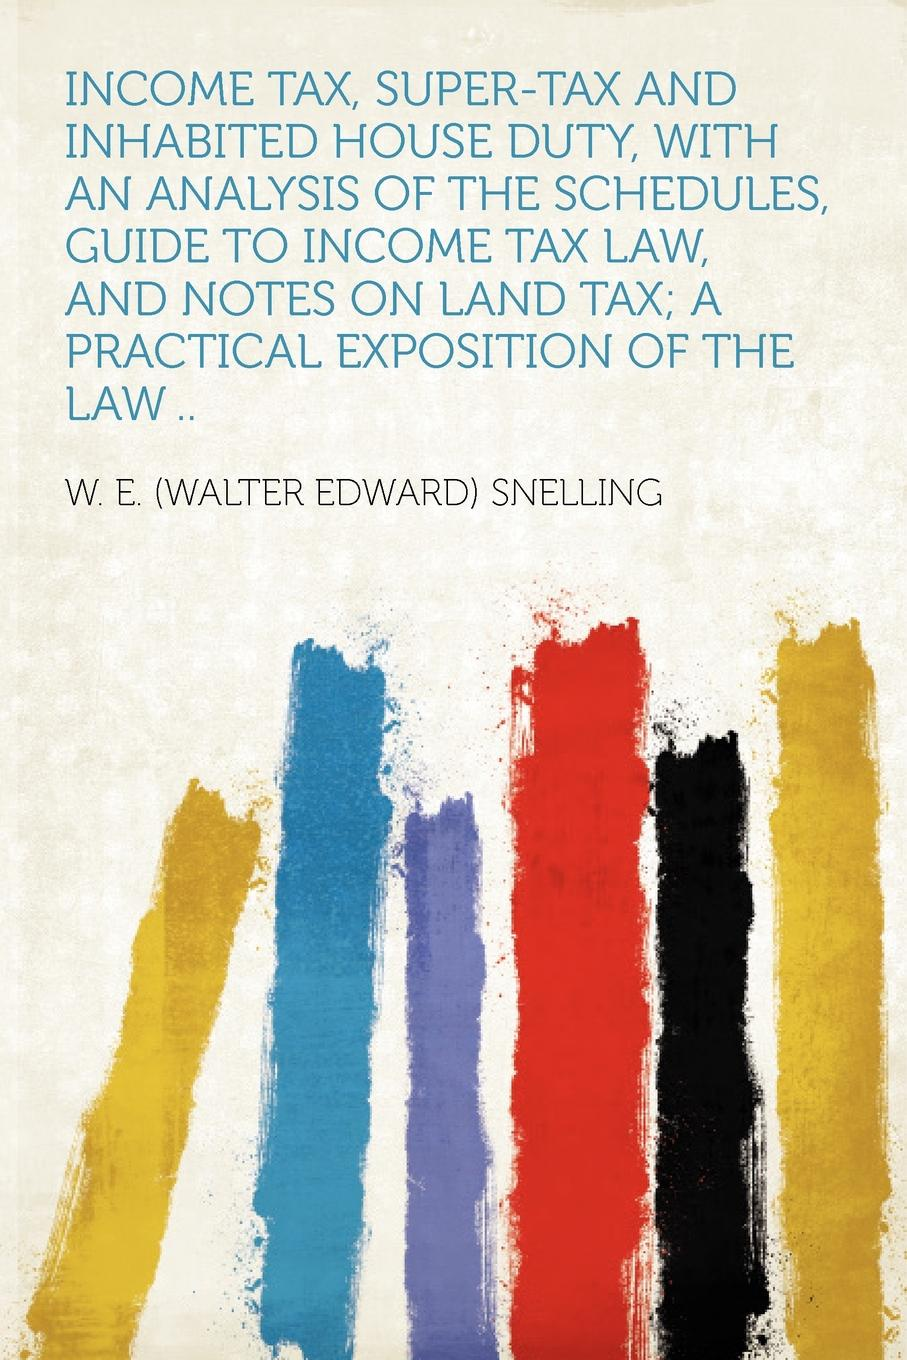 Income Tax, Super-tax and Inhabited House Duty, With an Analysis of the Schedules, Guide to Income Tax Law, and Notes on Land Tax; a Practical Exposition of the Law ..